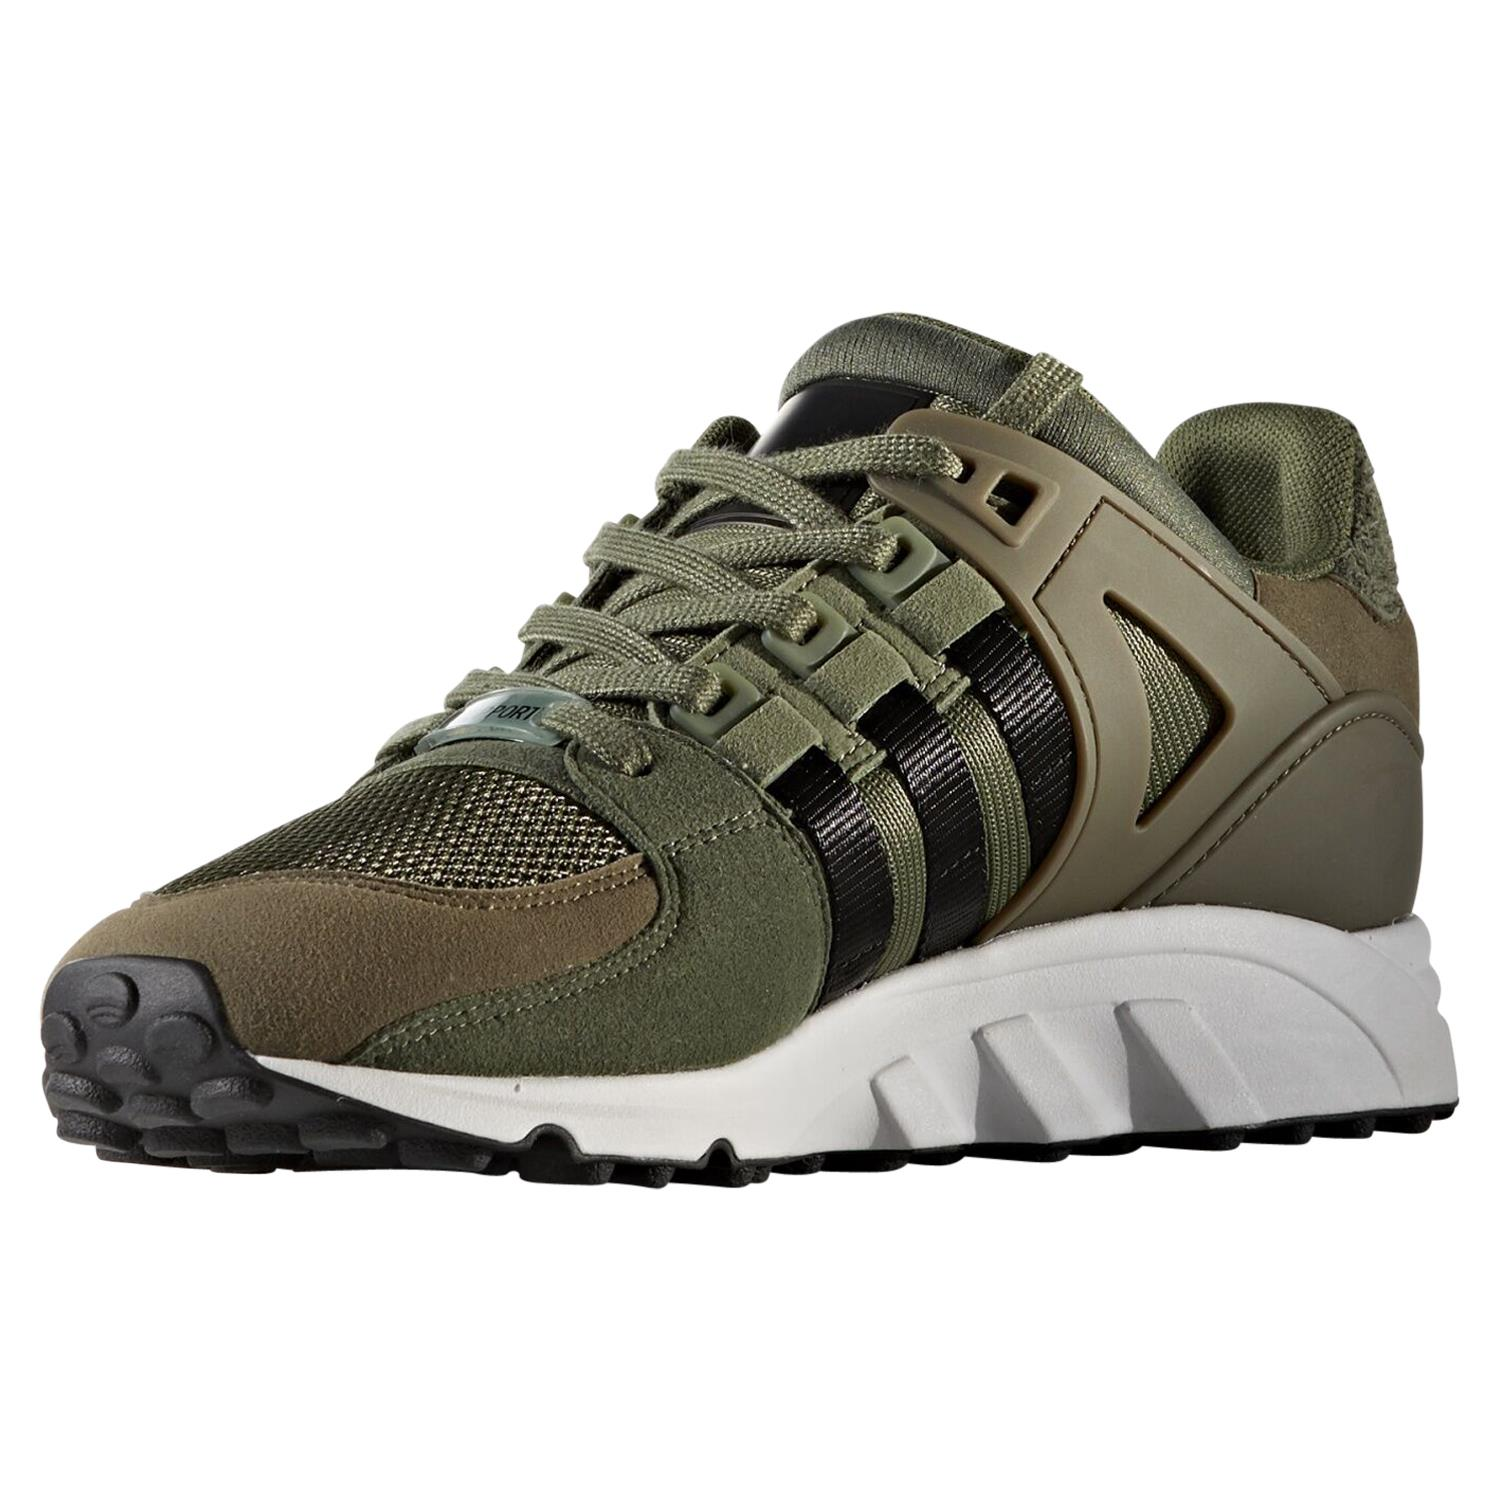 Details about adidas ORIGINALS EQT SUPPORT RF TRAINERS ARMY GREEN CARGO MEN'S SALE SHOES RARE